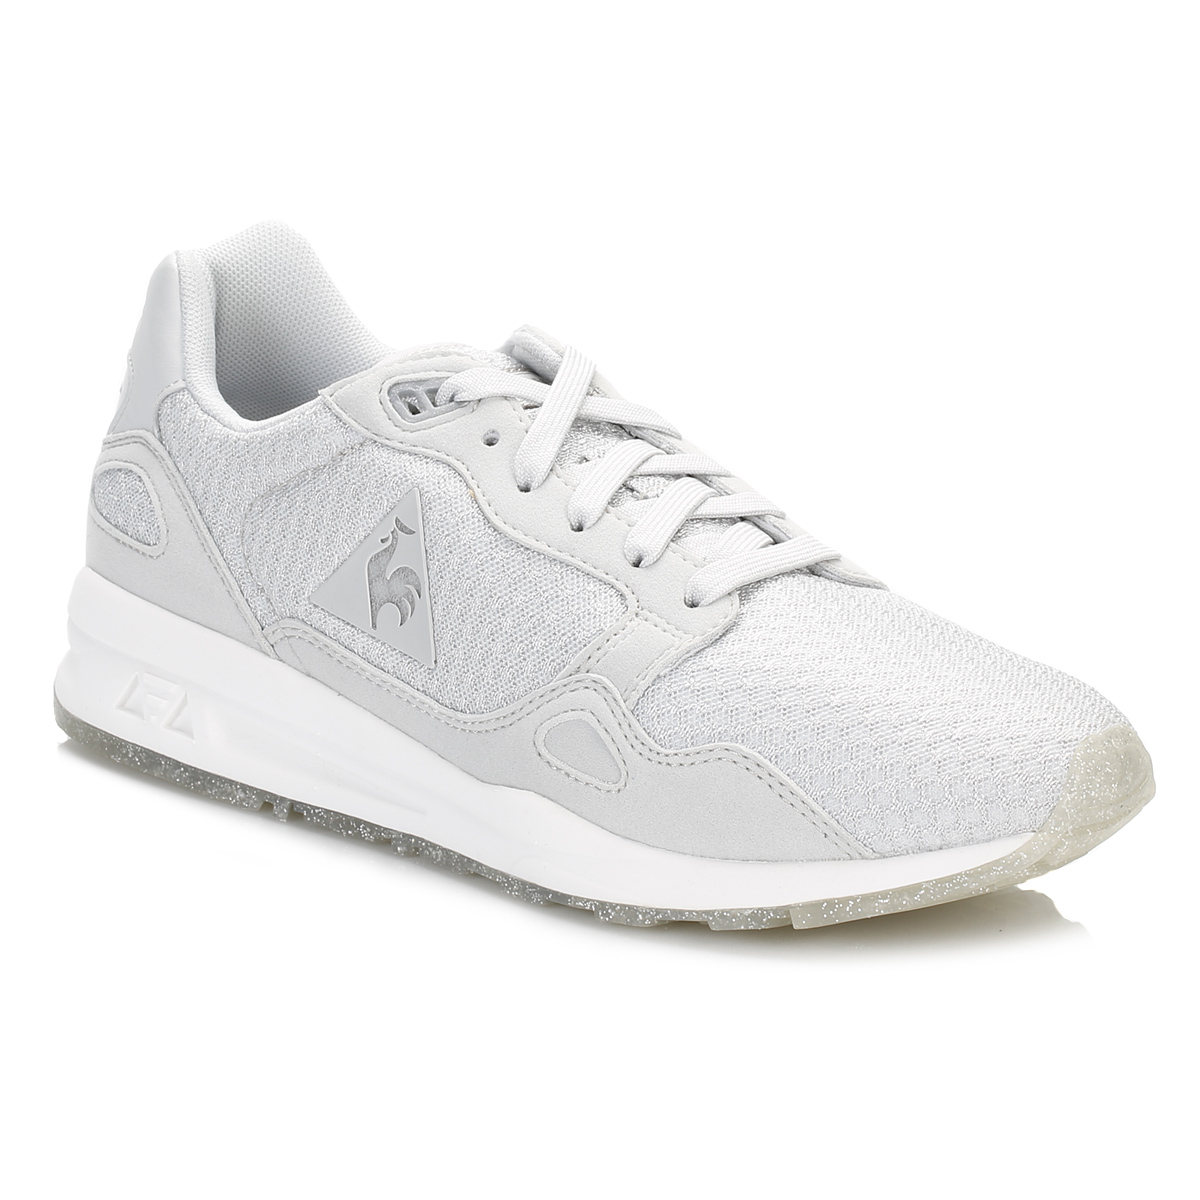 le coq sportif womens galet lcs r900 w sparkly trainers casual running shoes ebay. Black Bedroom Furniture Sets. Home Design Ideas